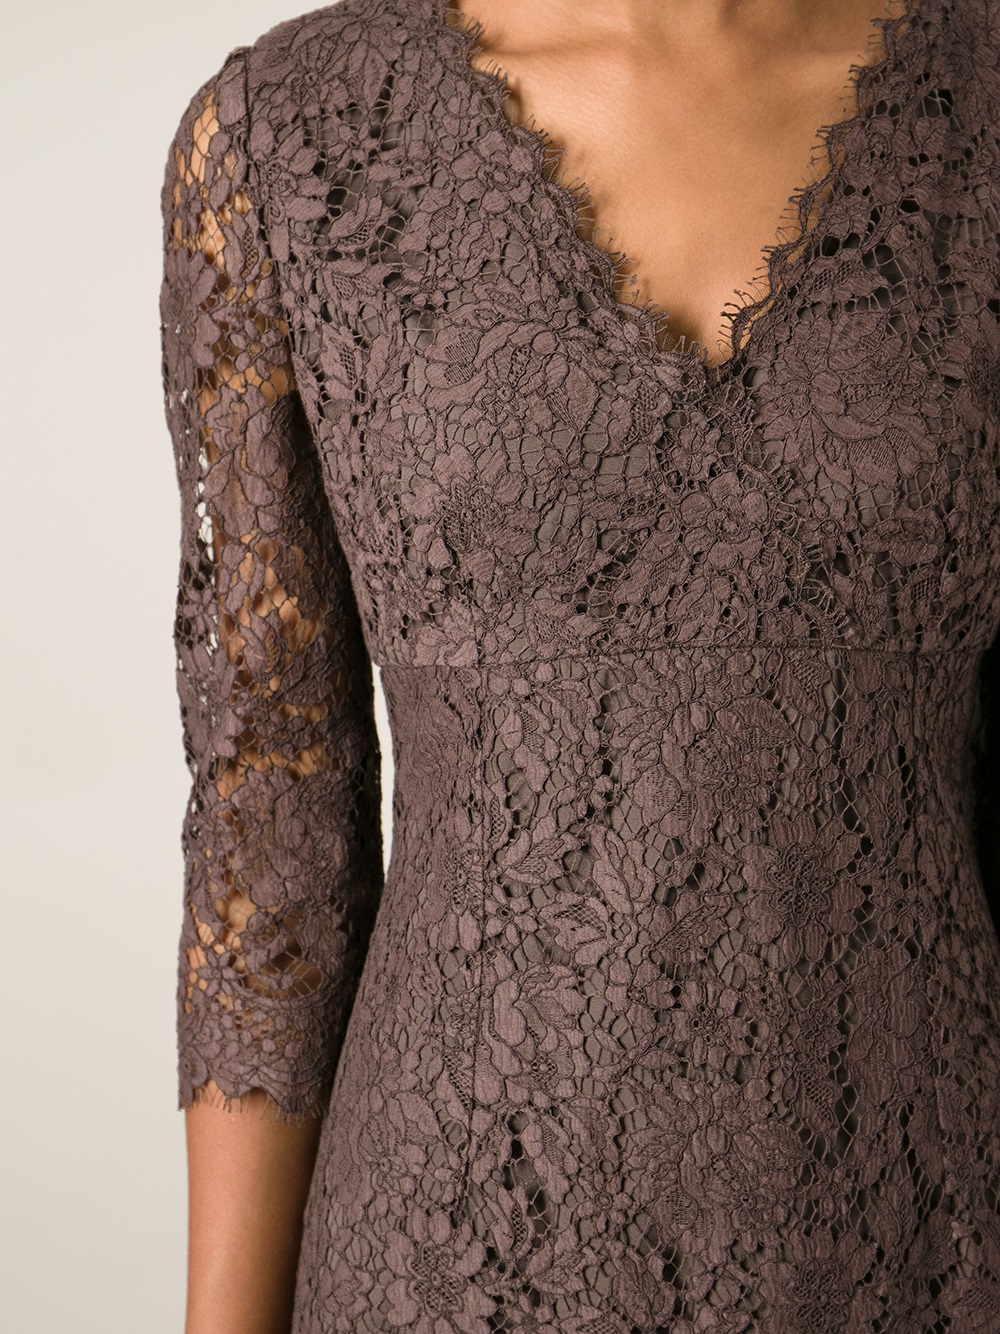 Dolce & gabbana Lace Dress in Brown | Lyst